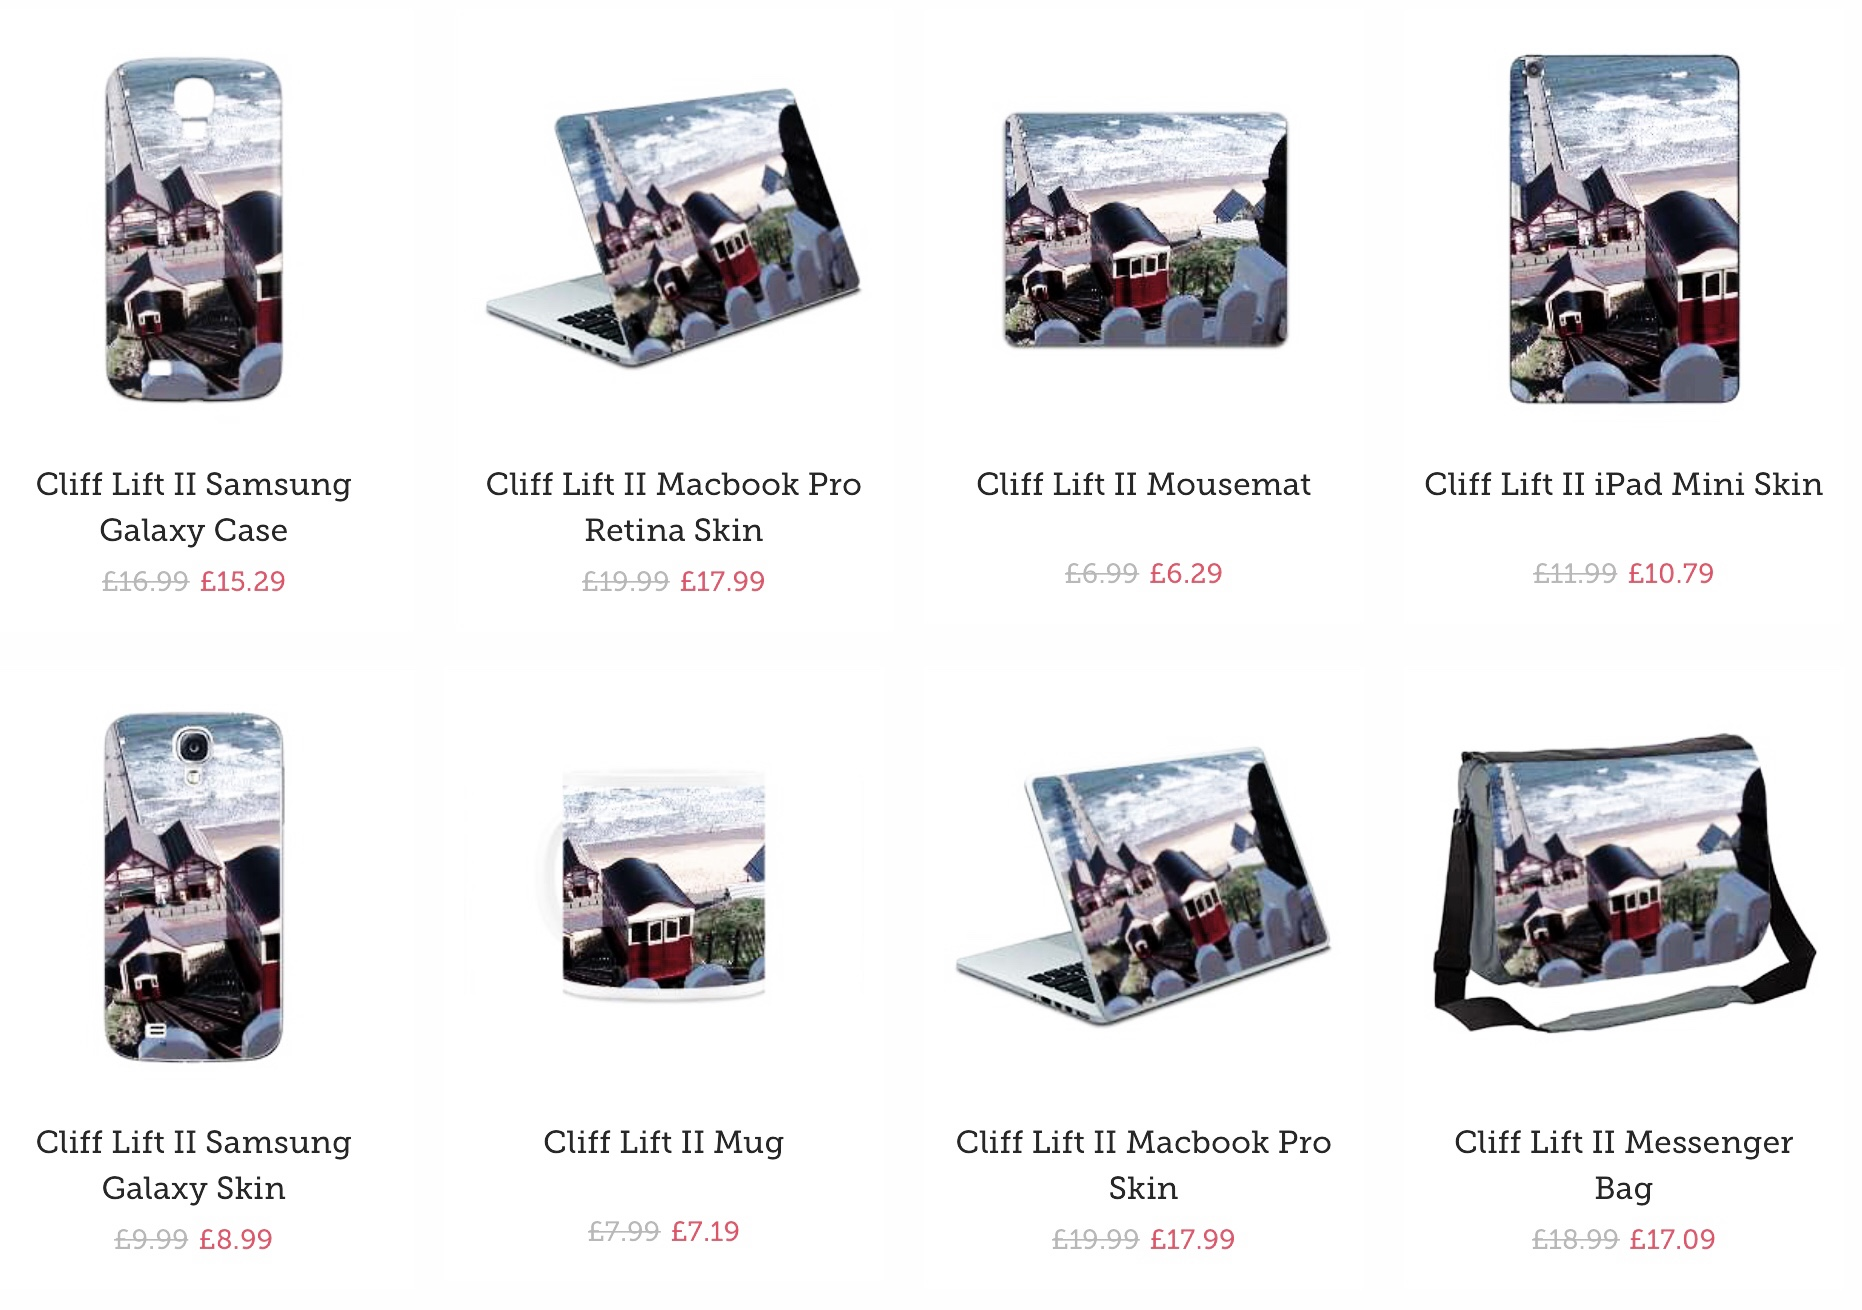 Cliff Lift Merchandise